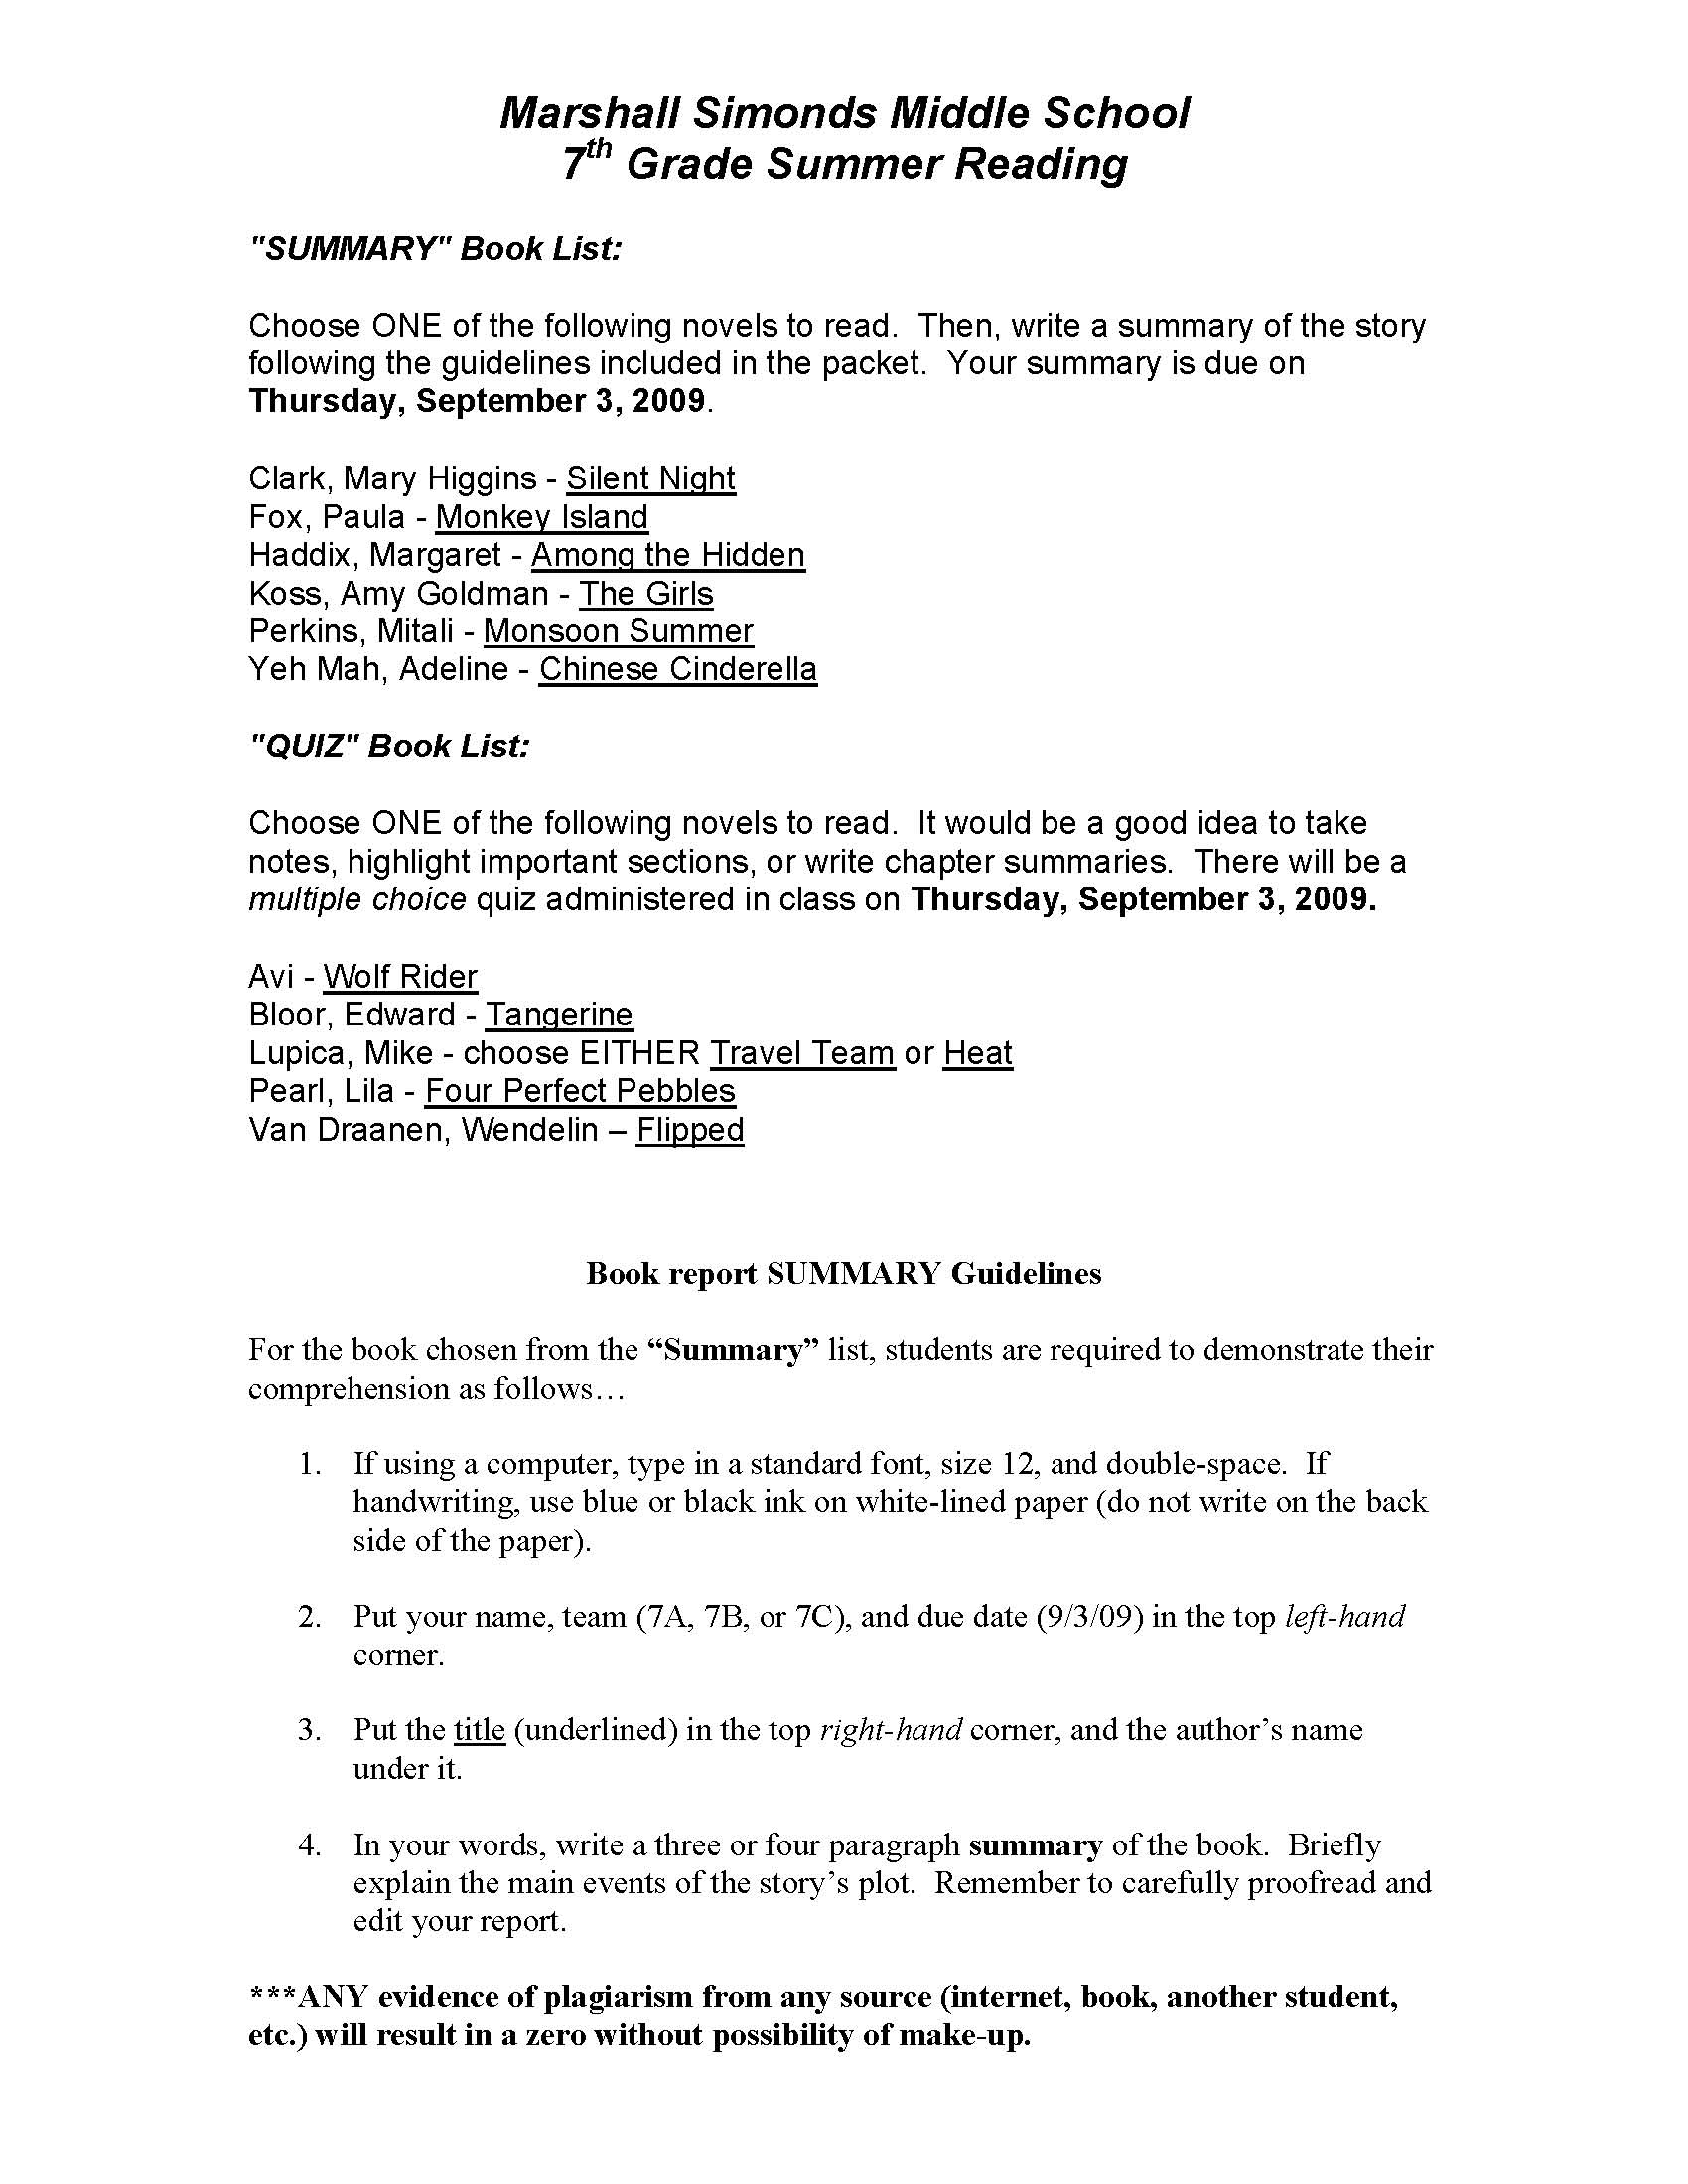 MSMS 7th Grade Summer Reading You Can Also Click On The Pages Below To Bring Them Up In A Separate Window